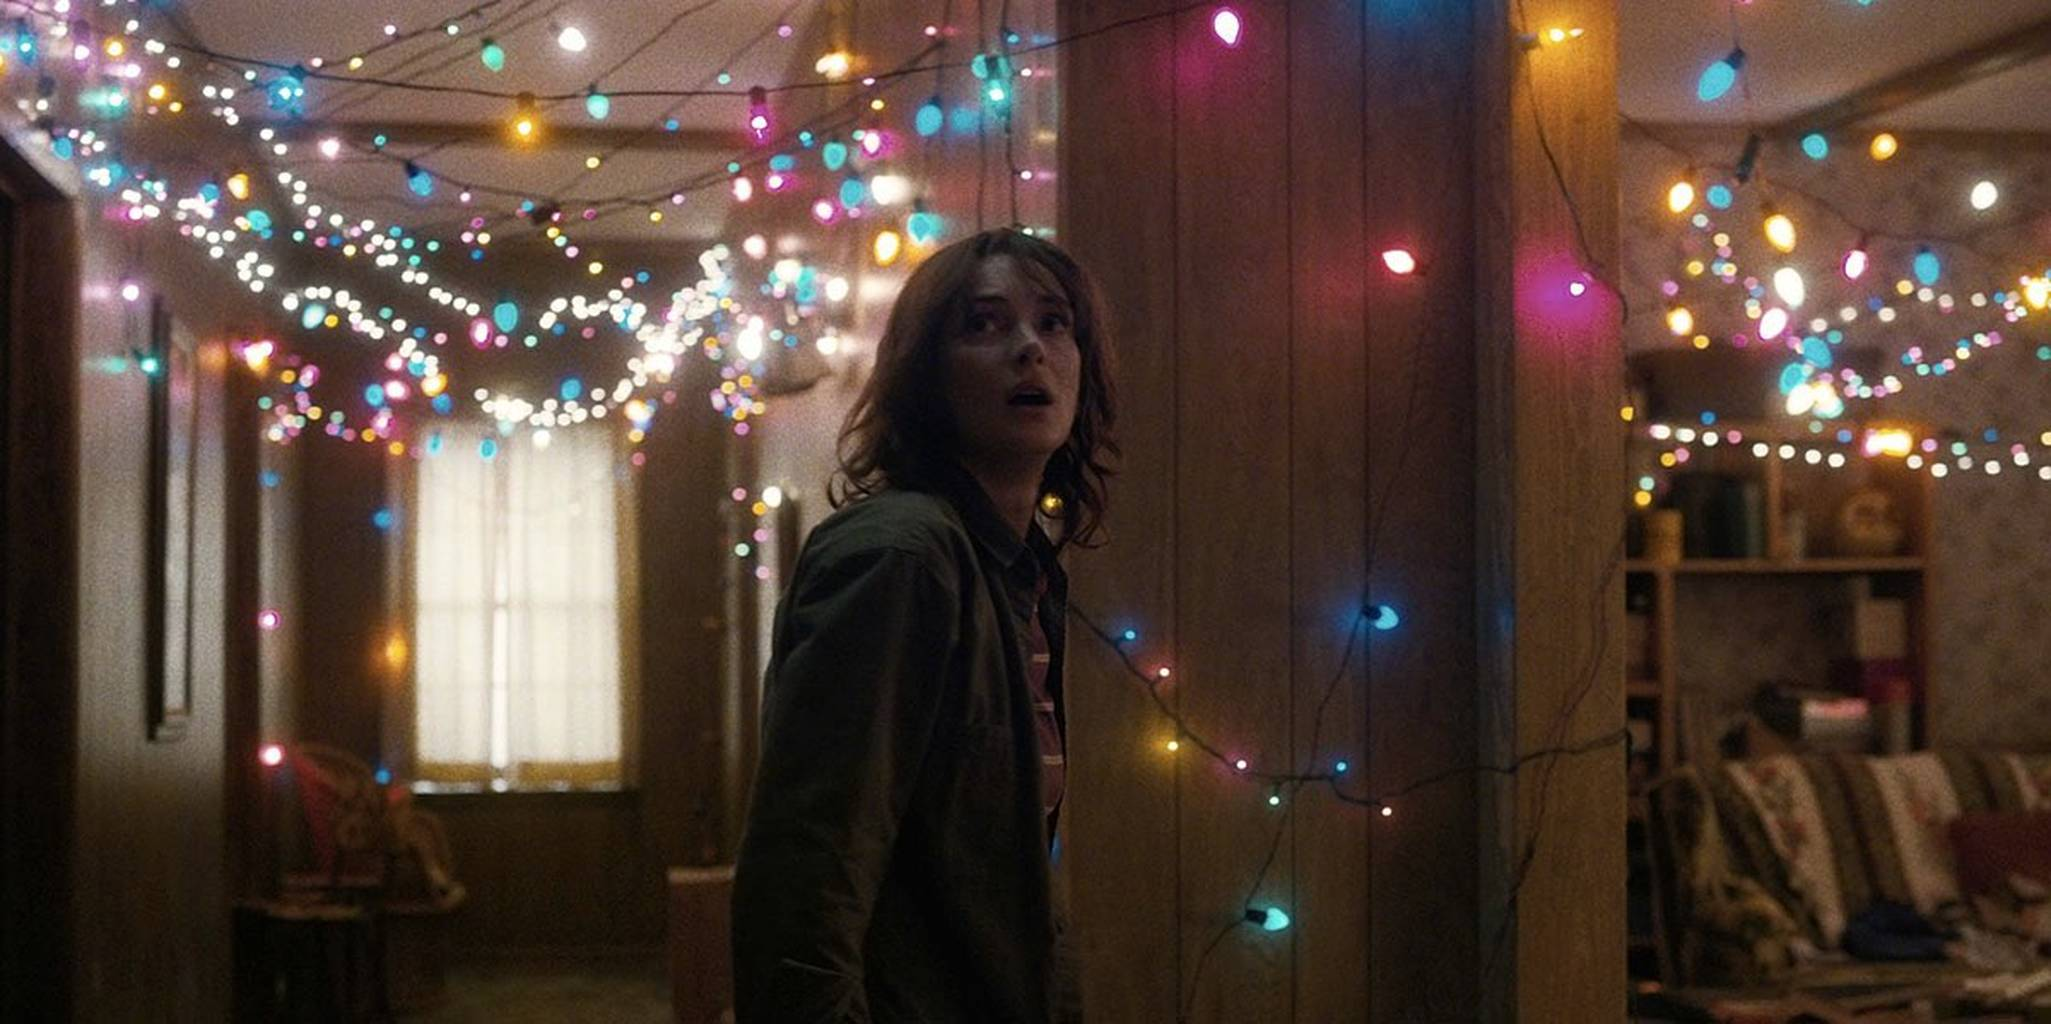 stranger-things-winona-rider